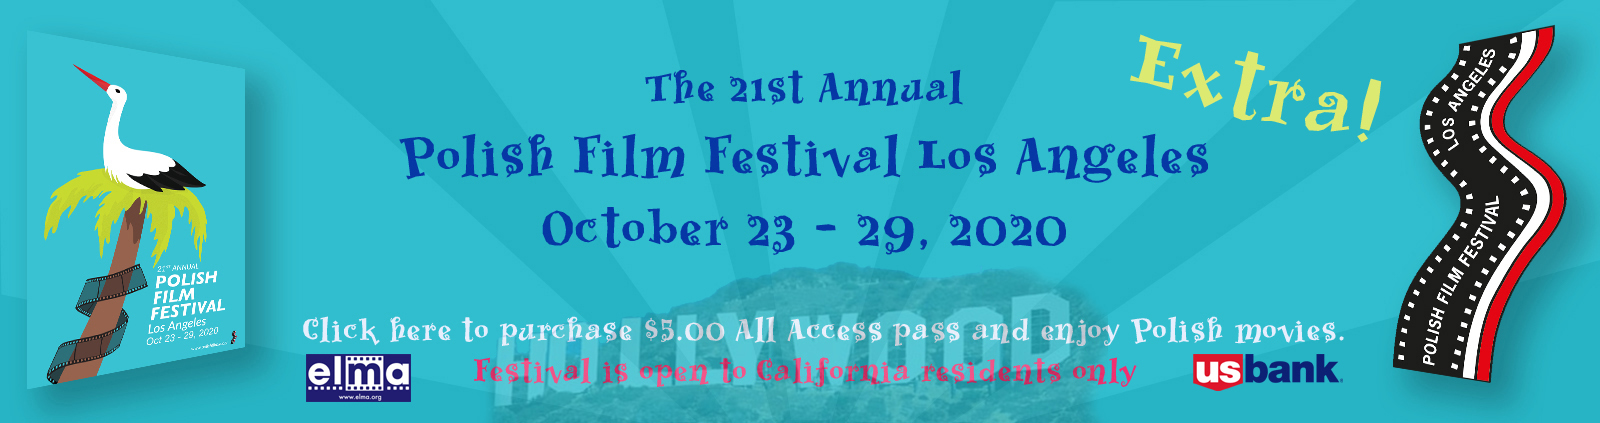 Polish Film Festival Los Angeles